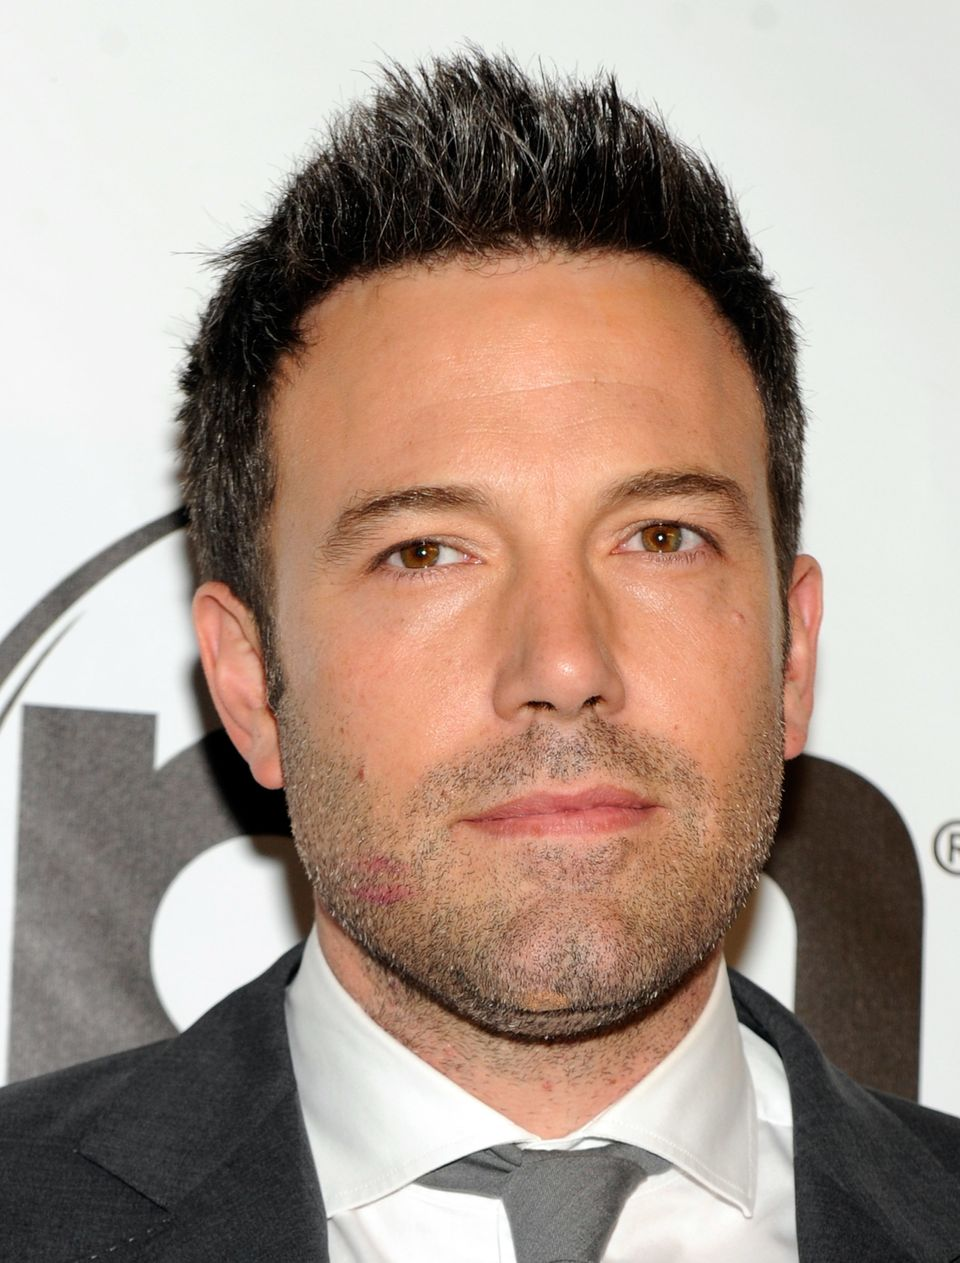 "According to <a href=""http://www.nytimes.com/2000/09/10/movies/film-ben-affleck-shocker-i-bargained-with-devil-for-fame.html?"